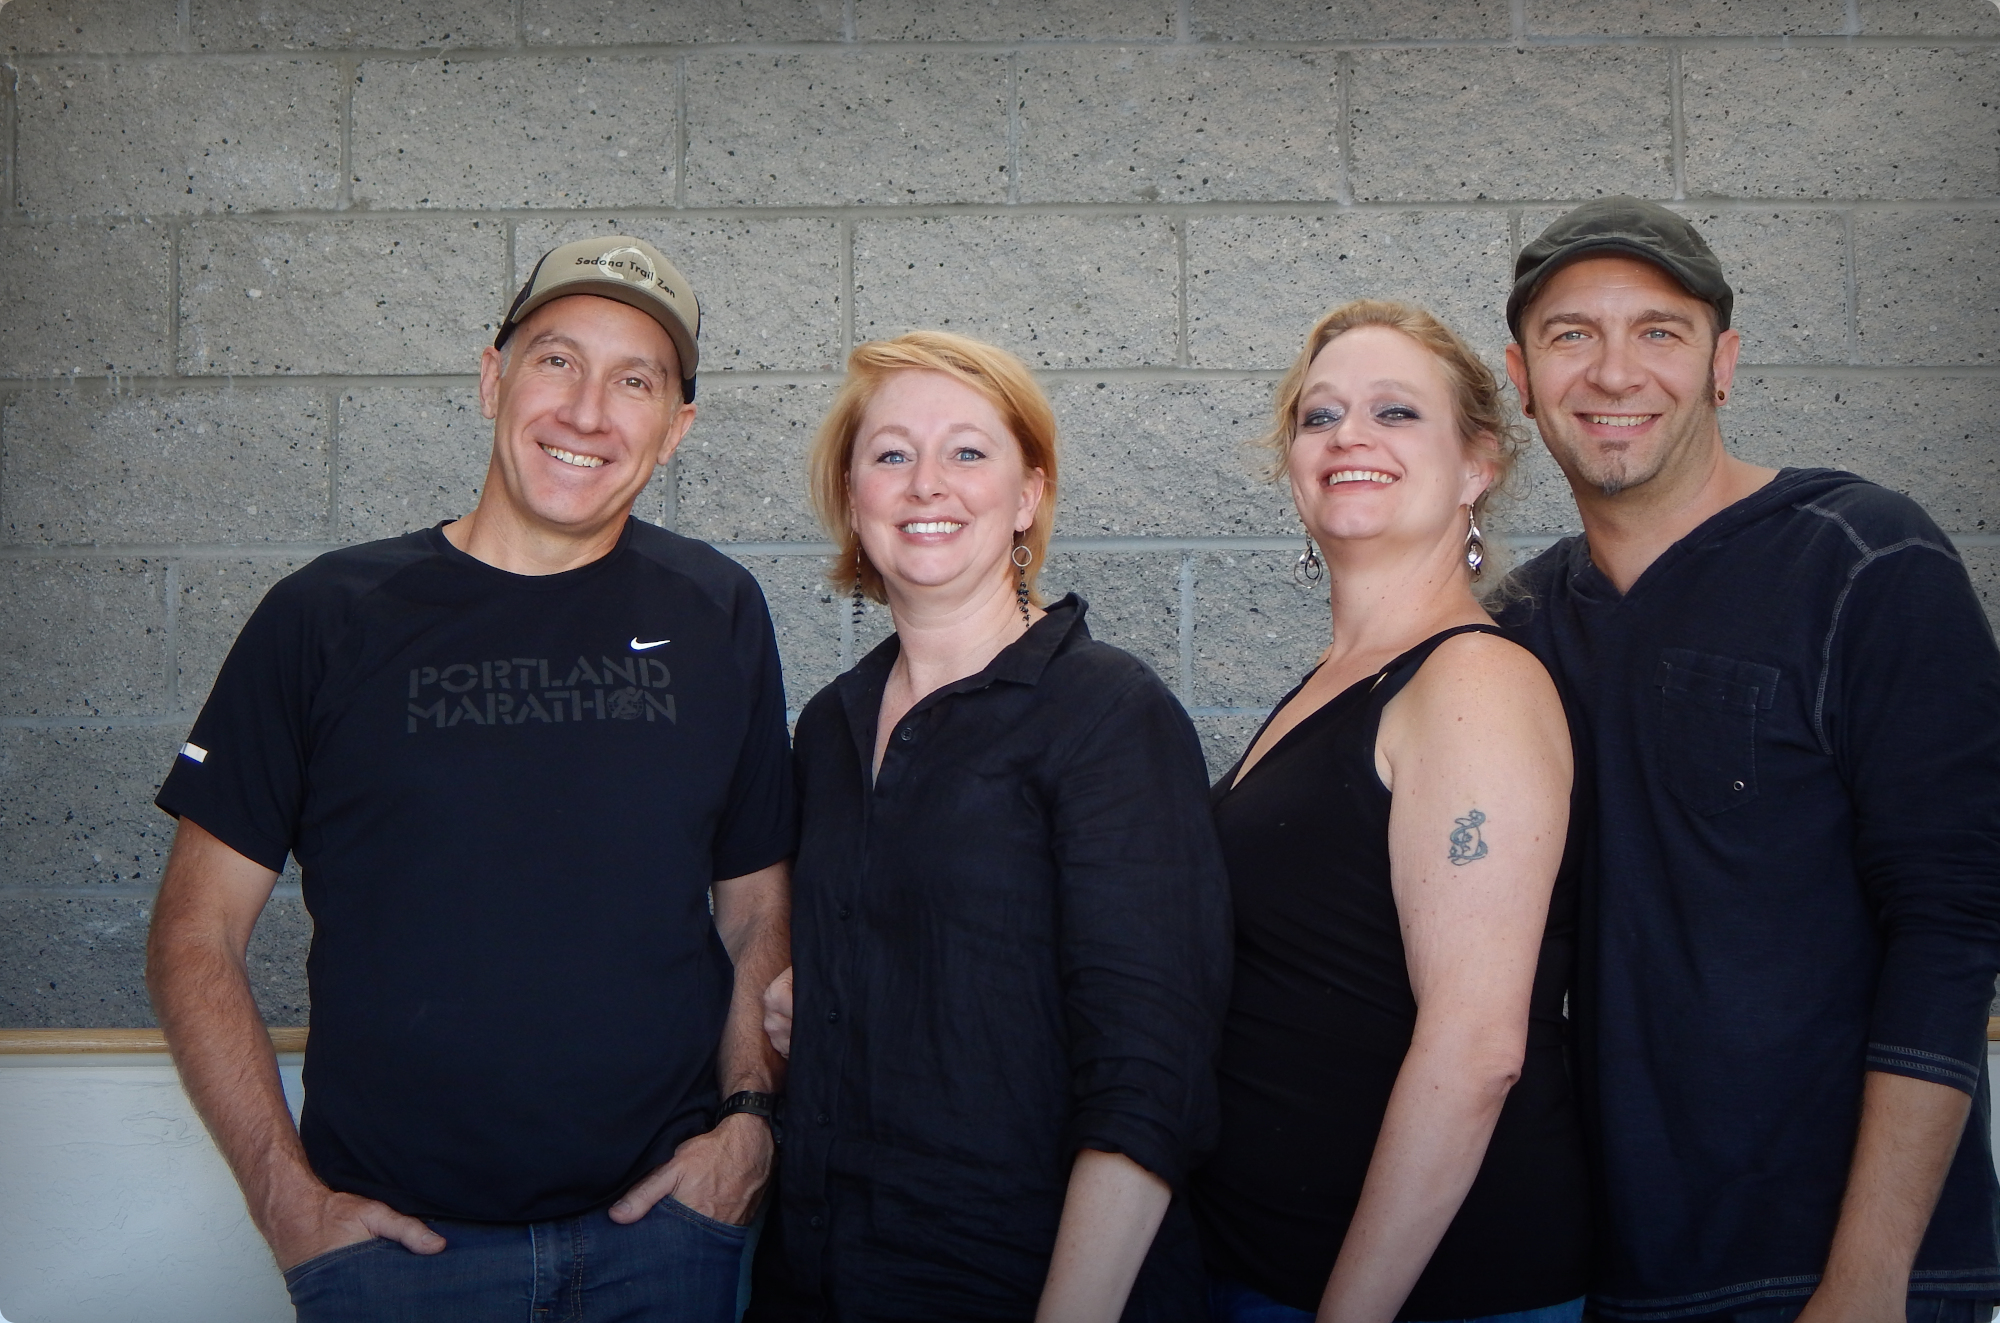 Meet our team. - We've got almost 35 years of experience recruiting in the education industry between us.  You won't find a team more knowledgeable and professional.  We value confidentiality, honesty and integrity.  Plus, we're just a lot of fun.  You'll love working with us.